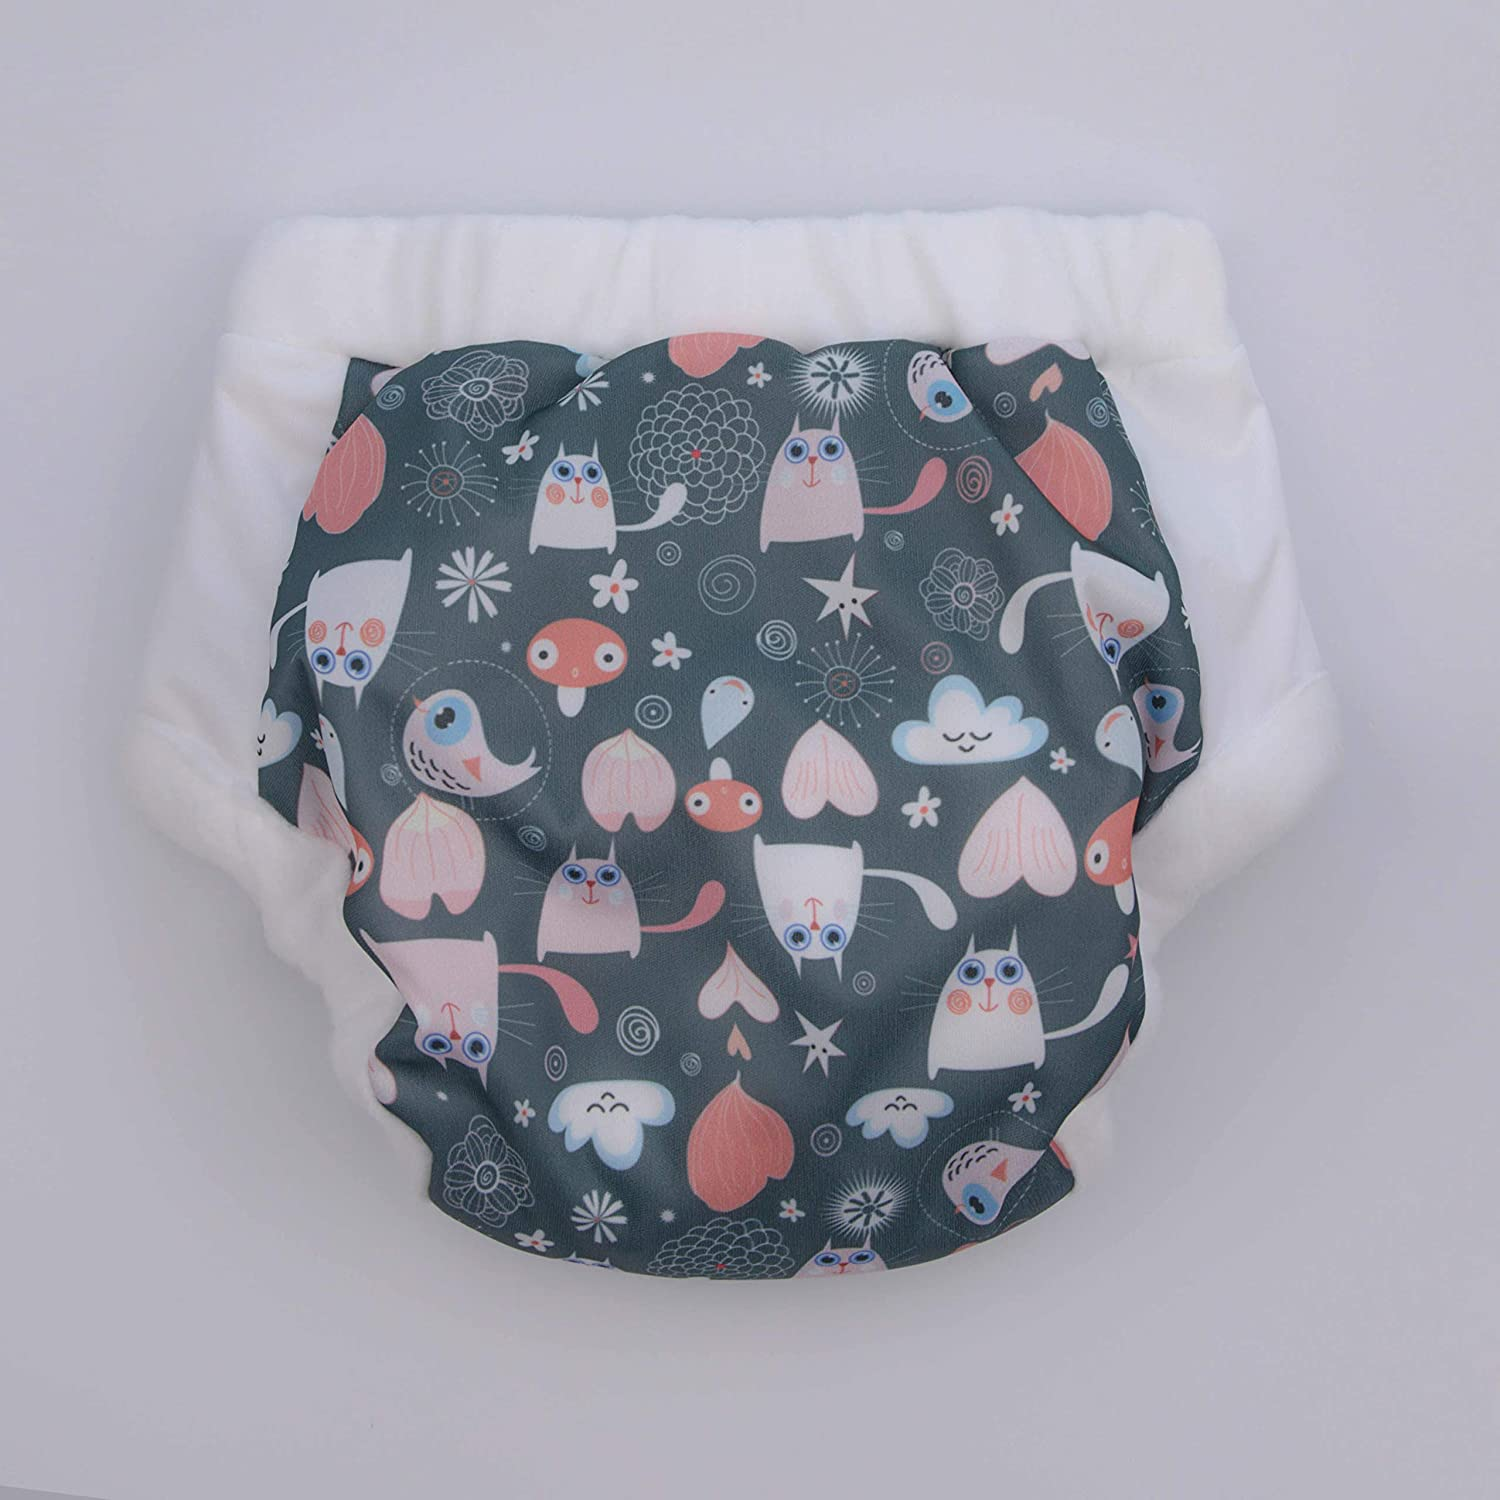 Super Undies Cotton Nighttime Bedwetting with Built-in Padding /& Optional Extra Insert Pads